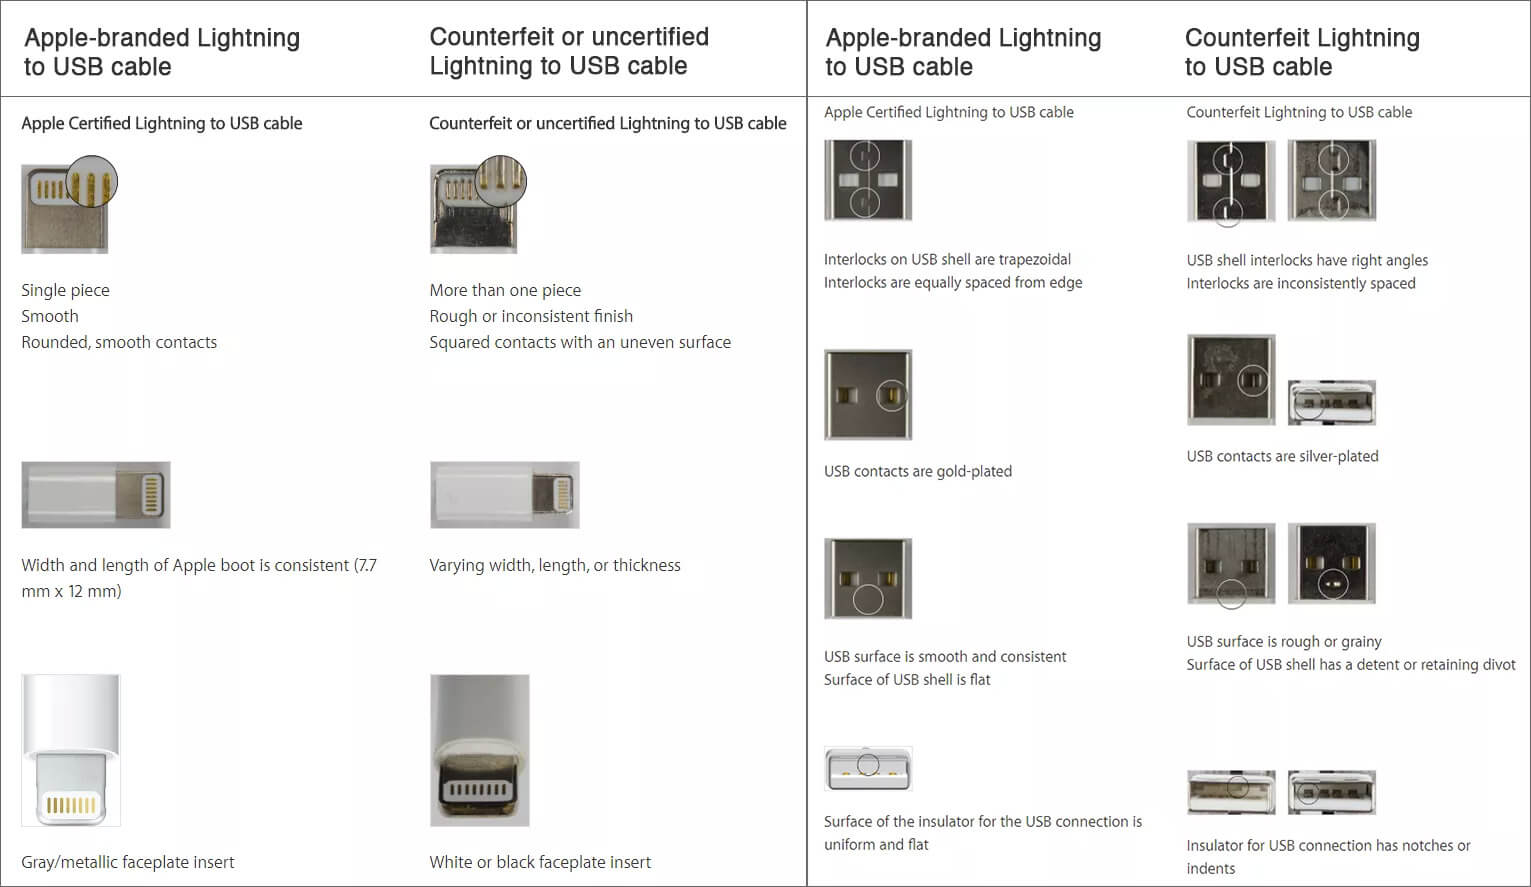 Compare of certified Apple accessories and counterfeit or uncertified Lightning accessories